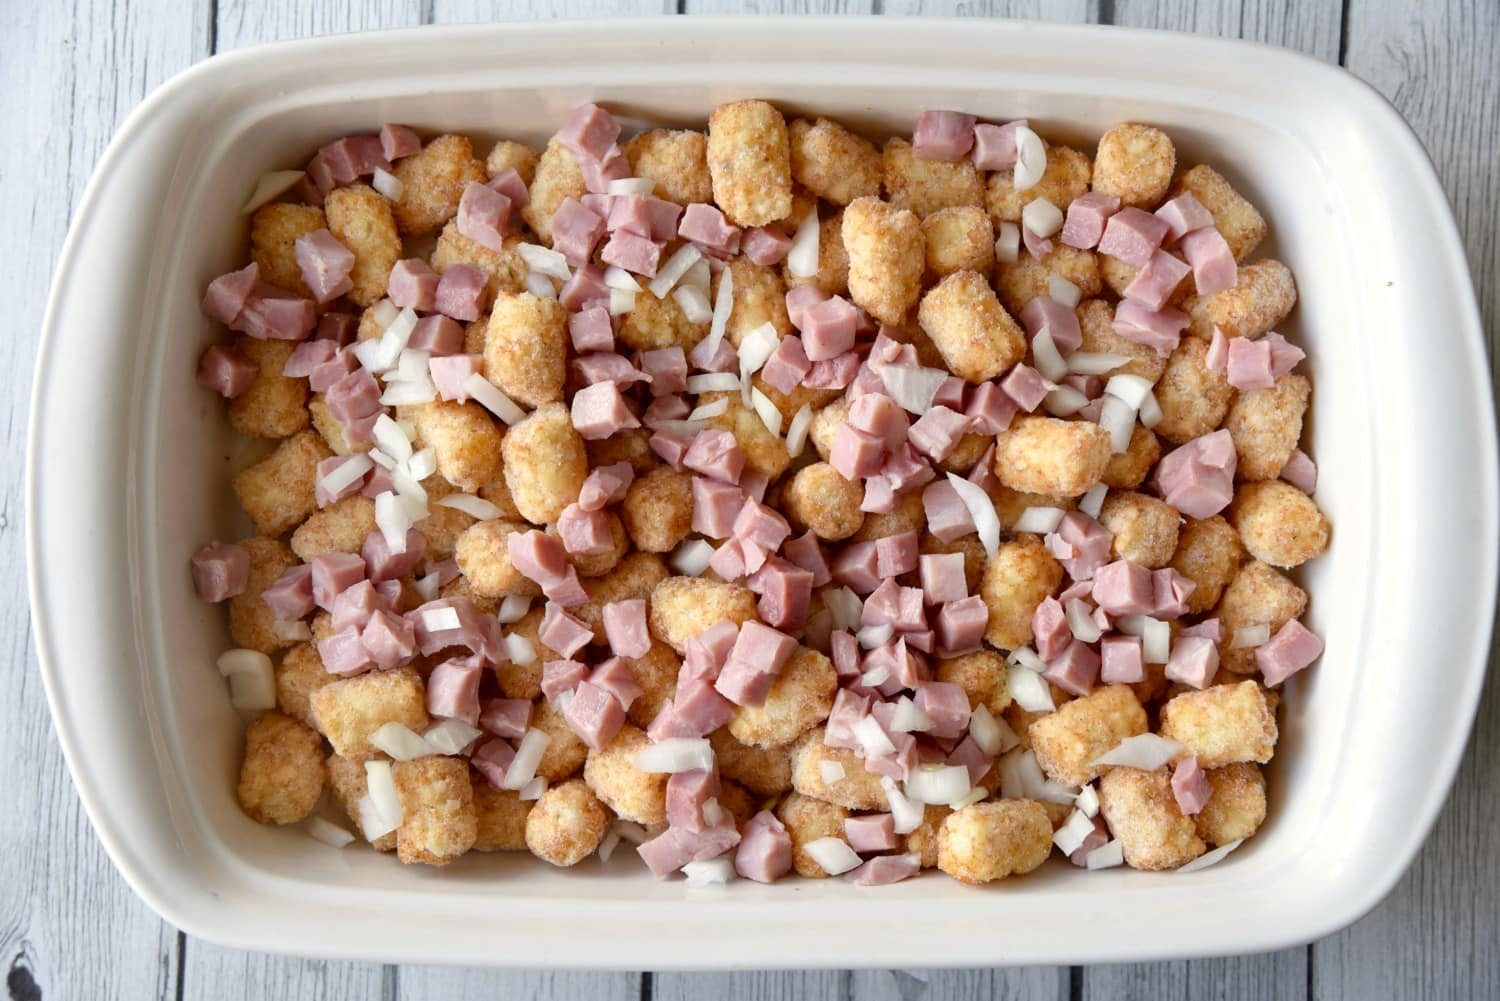 tater tot caserole